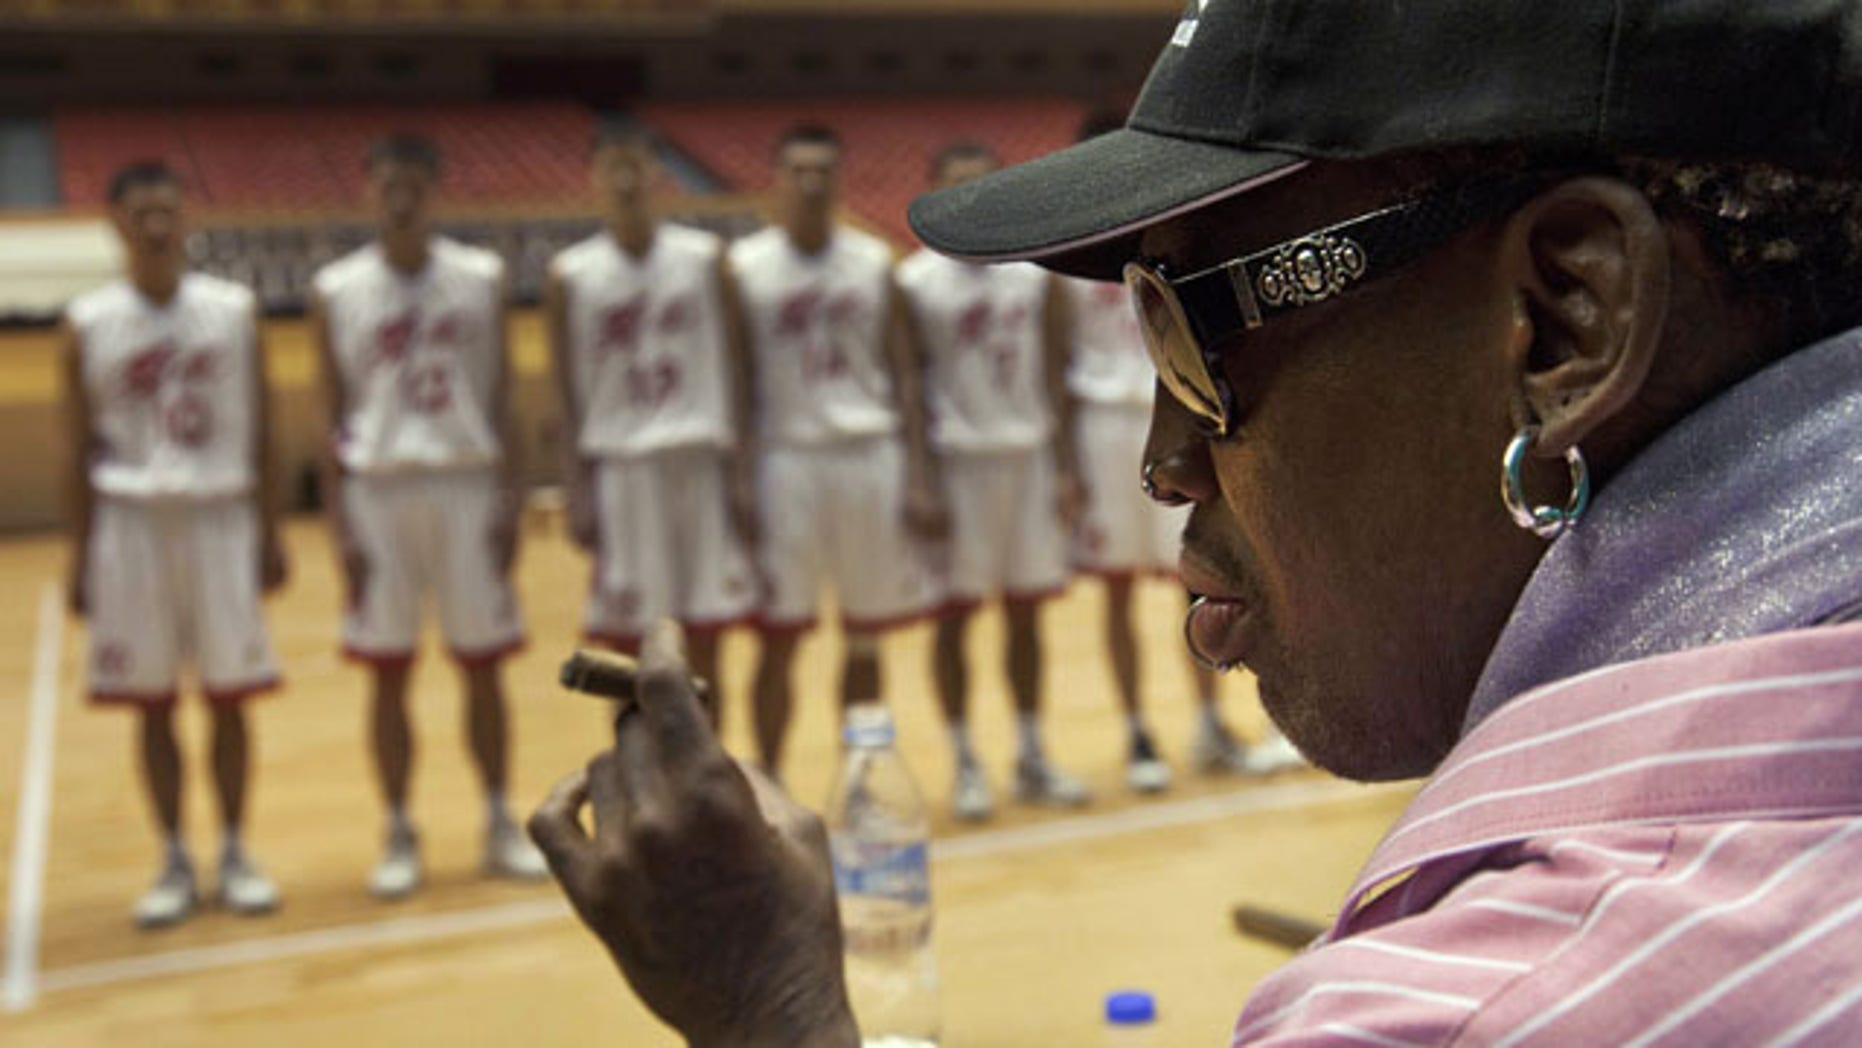 December 20, 2013: Former NBA basketball player Dennis Rodman holds a cigar as he speaks to North Korean basketball players during a practice session in Pyongyang, North Korea. During the session, Rodman selected the members of the North Korean team who will play in Pyongyang against visiting NBA stars on Jan. 8, 2014, the birthday of North Korean leader Kim Jong Un. (AP)